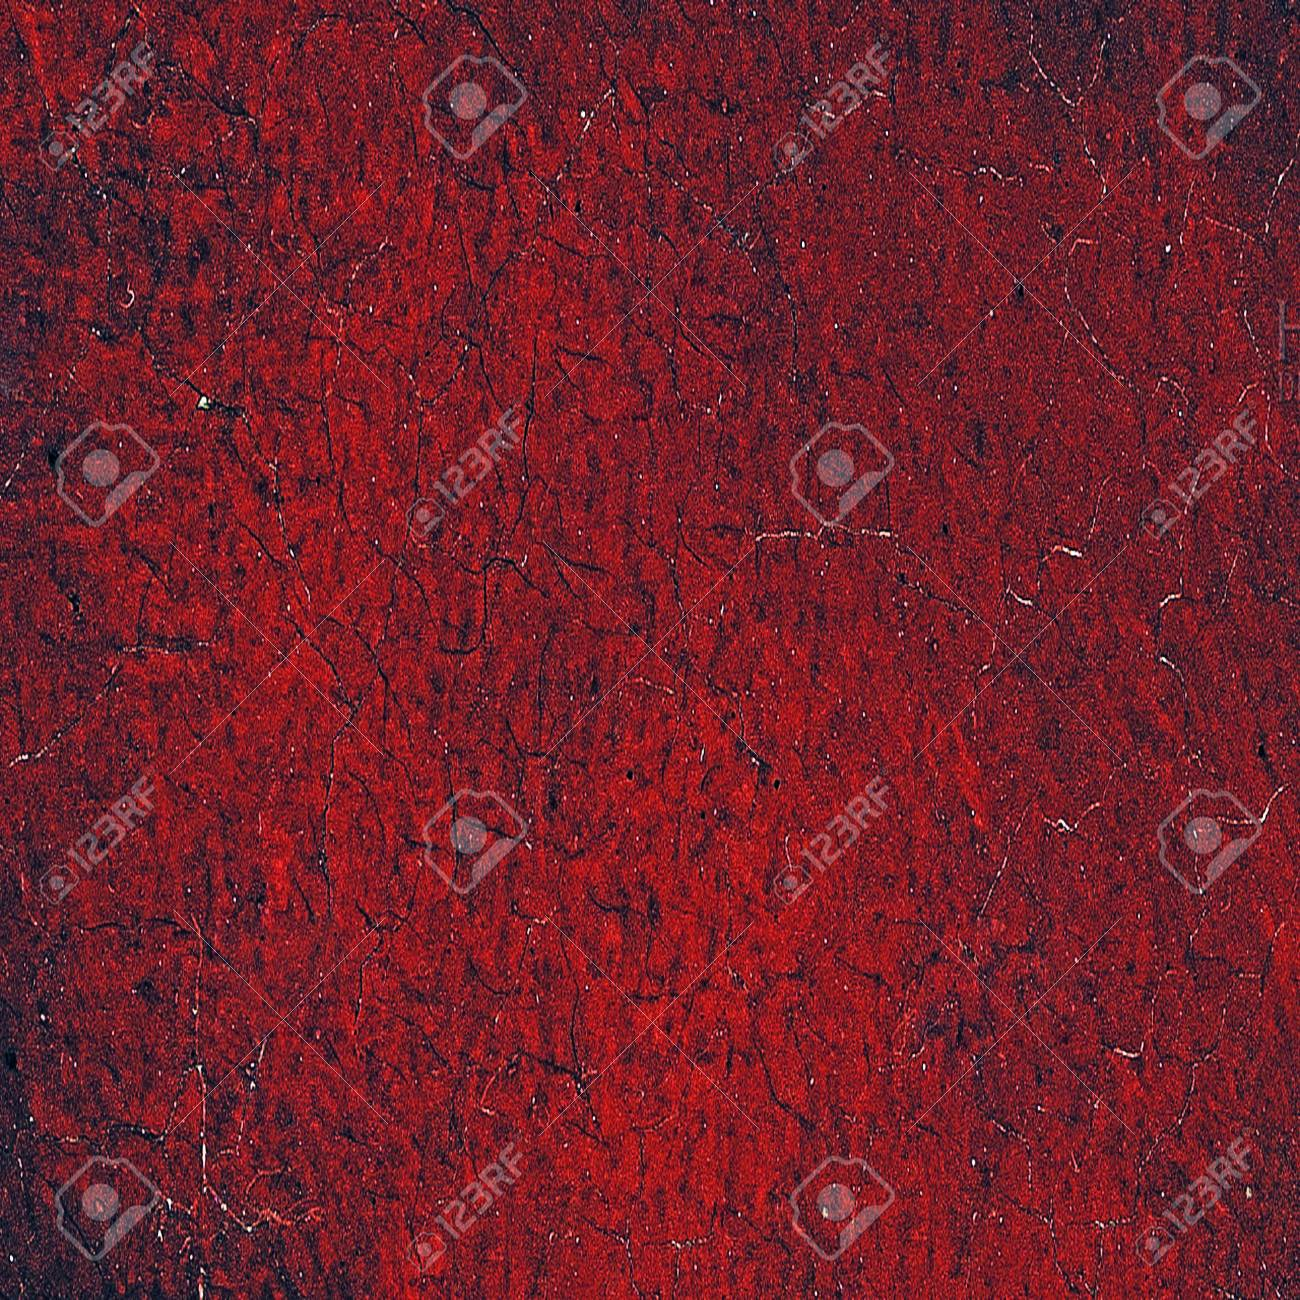 Grunge texture. For vintage layout design, holiday background invitation or web template Stock Photo - 18104112